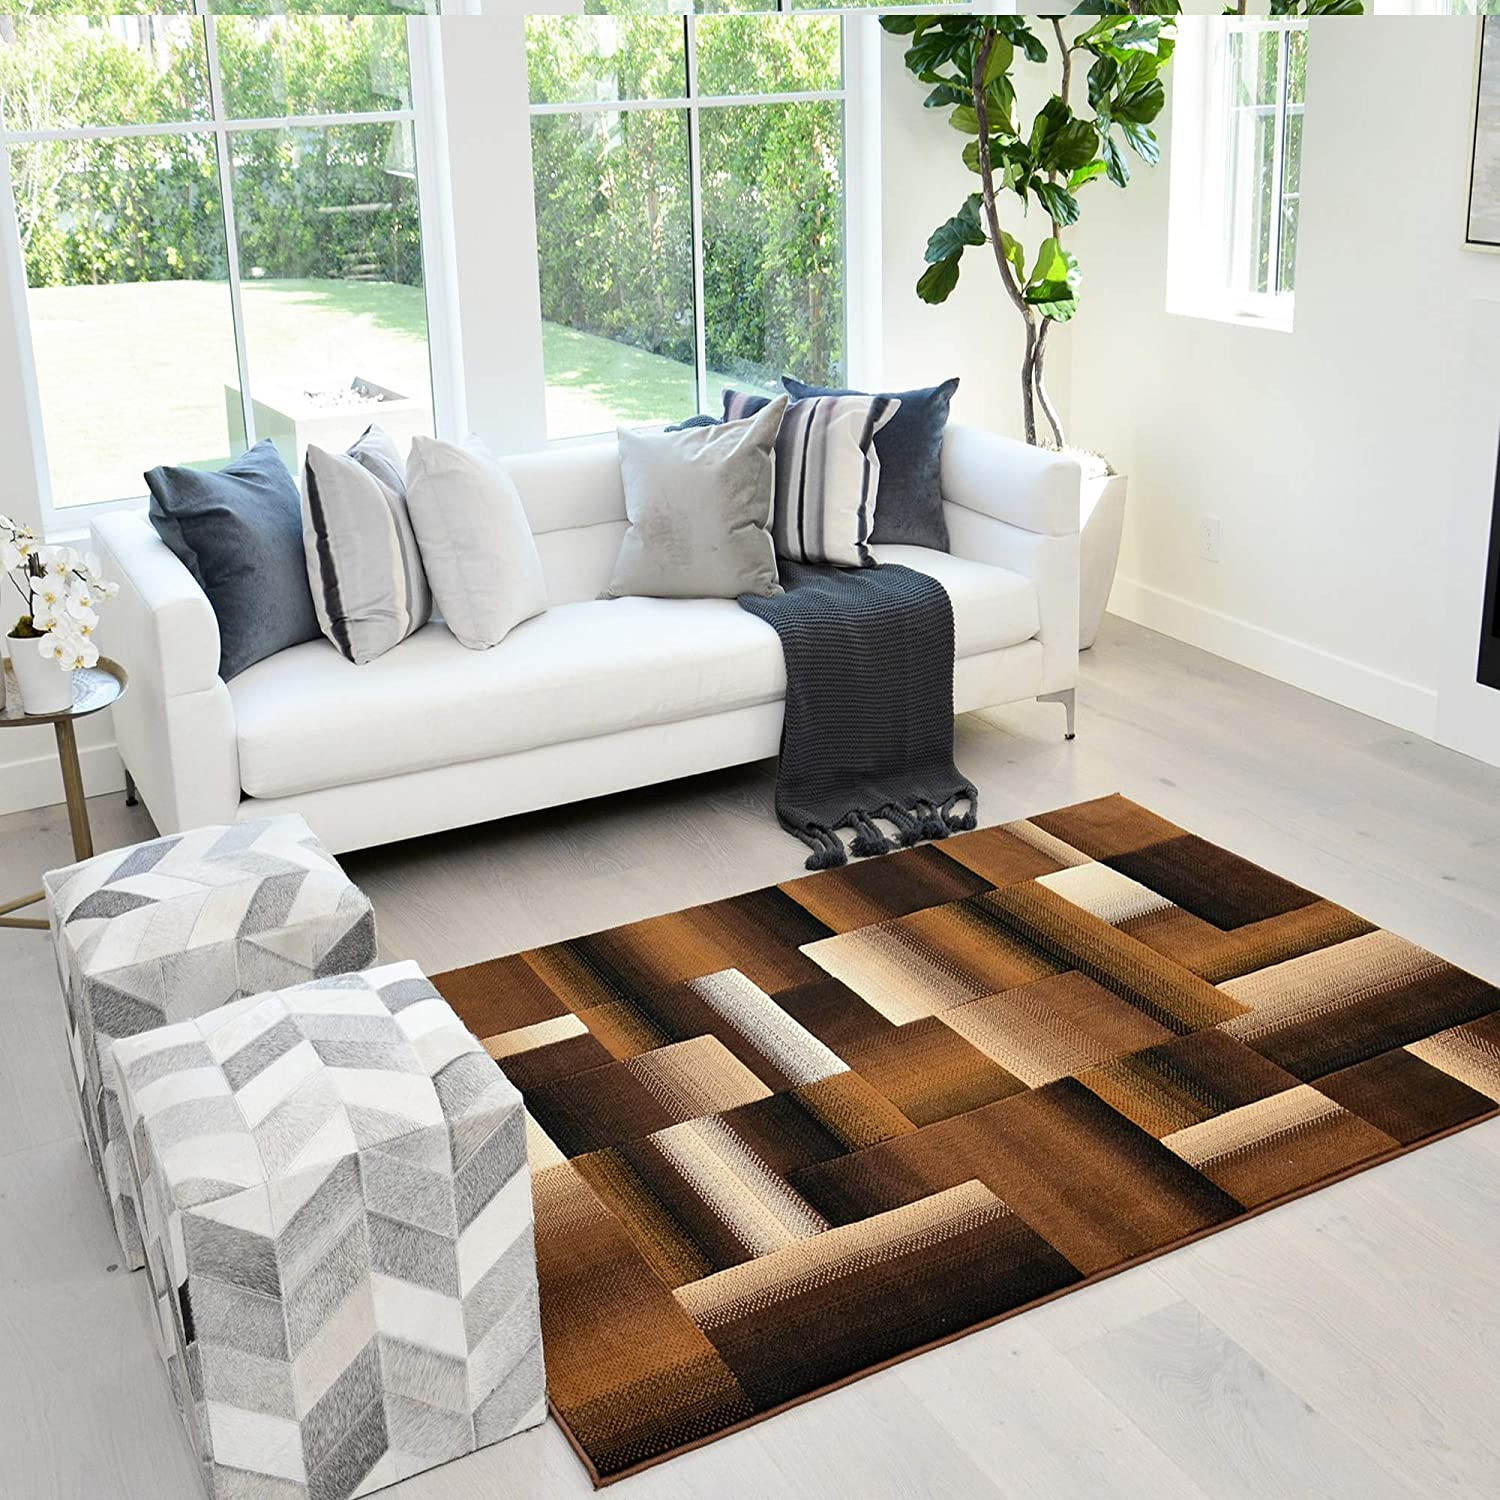 Amazon Com Handcraft Rugs Chocolate Brown Beige Gold Abstract Geometric Modern Squares Pattern Area Rug 8 Ft By 10 Ft Kitchen Dining